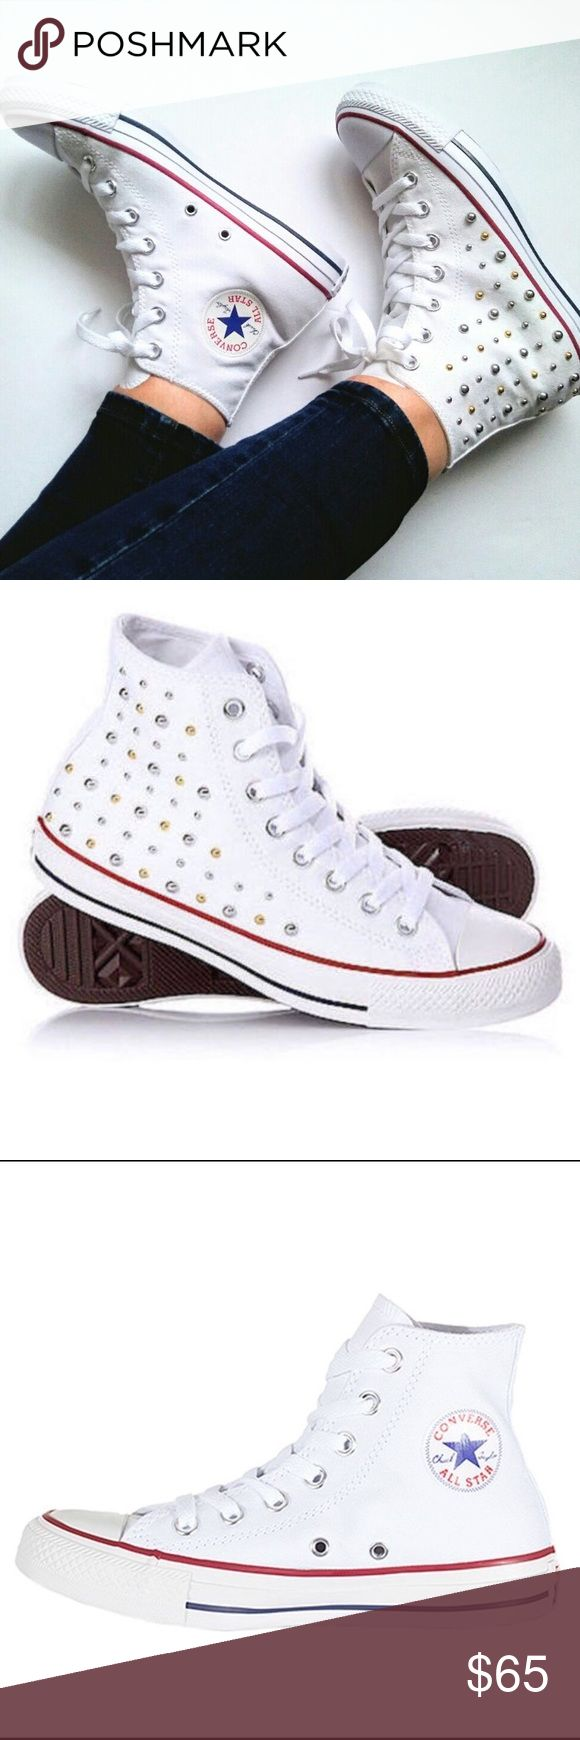 Studded converse Studded converse. New without box. Converse Shoes Sneakers